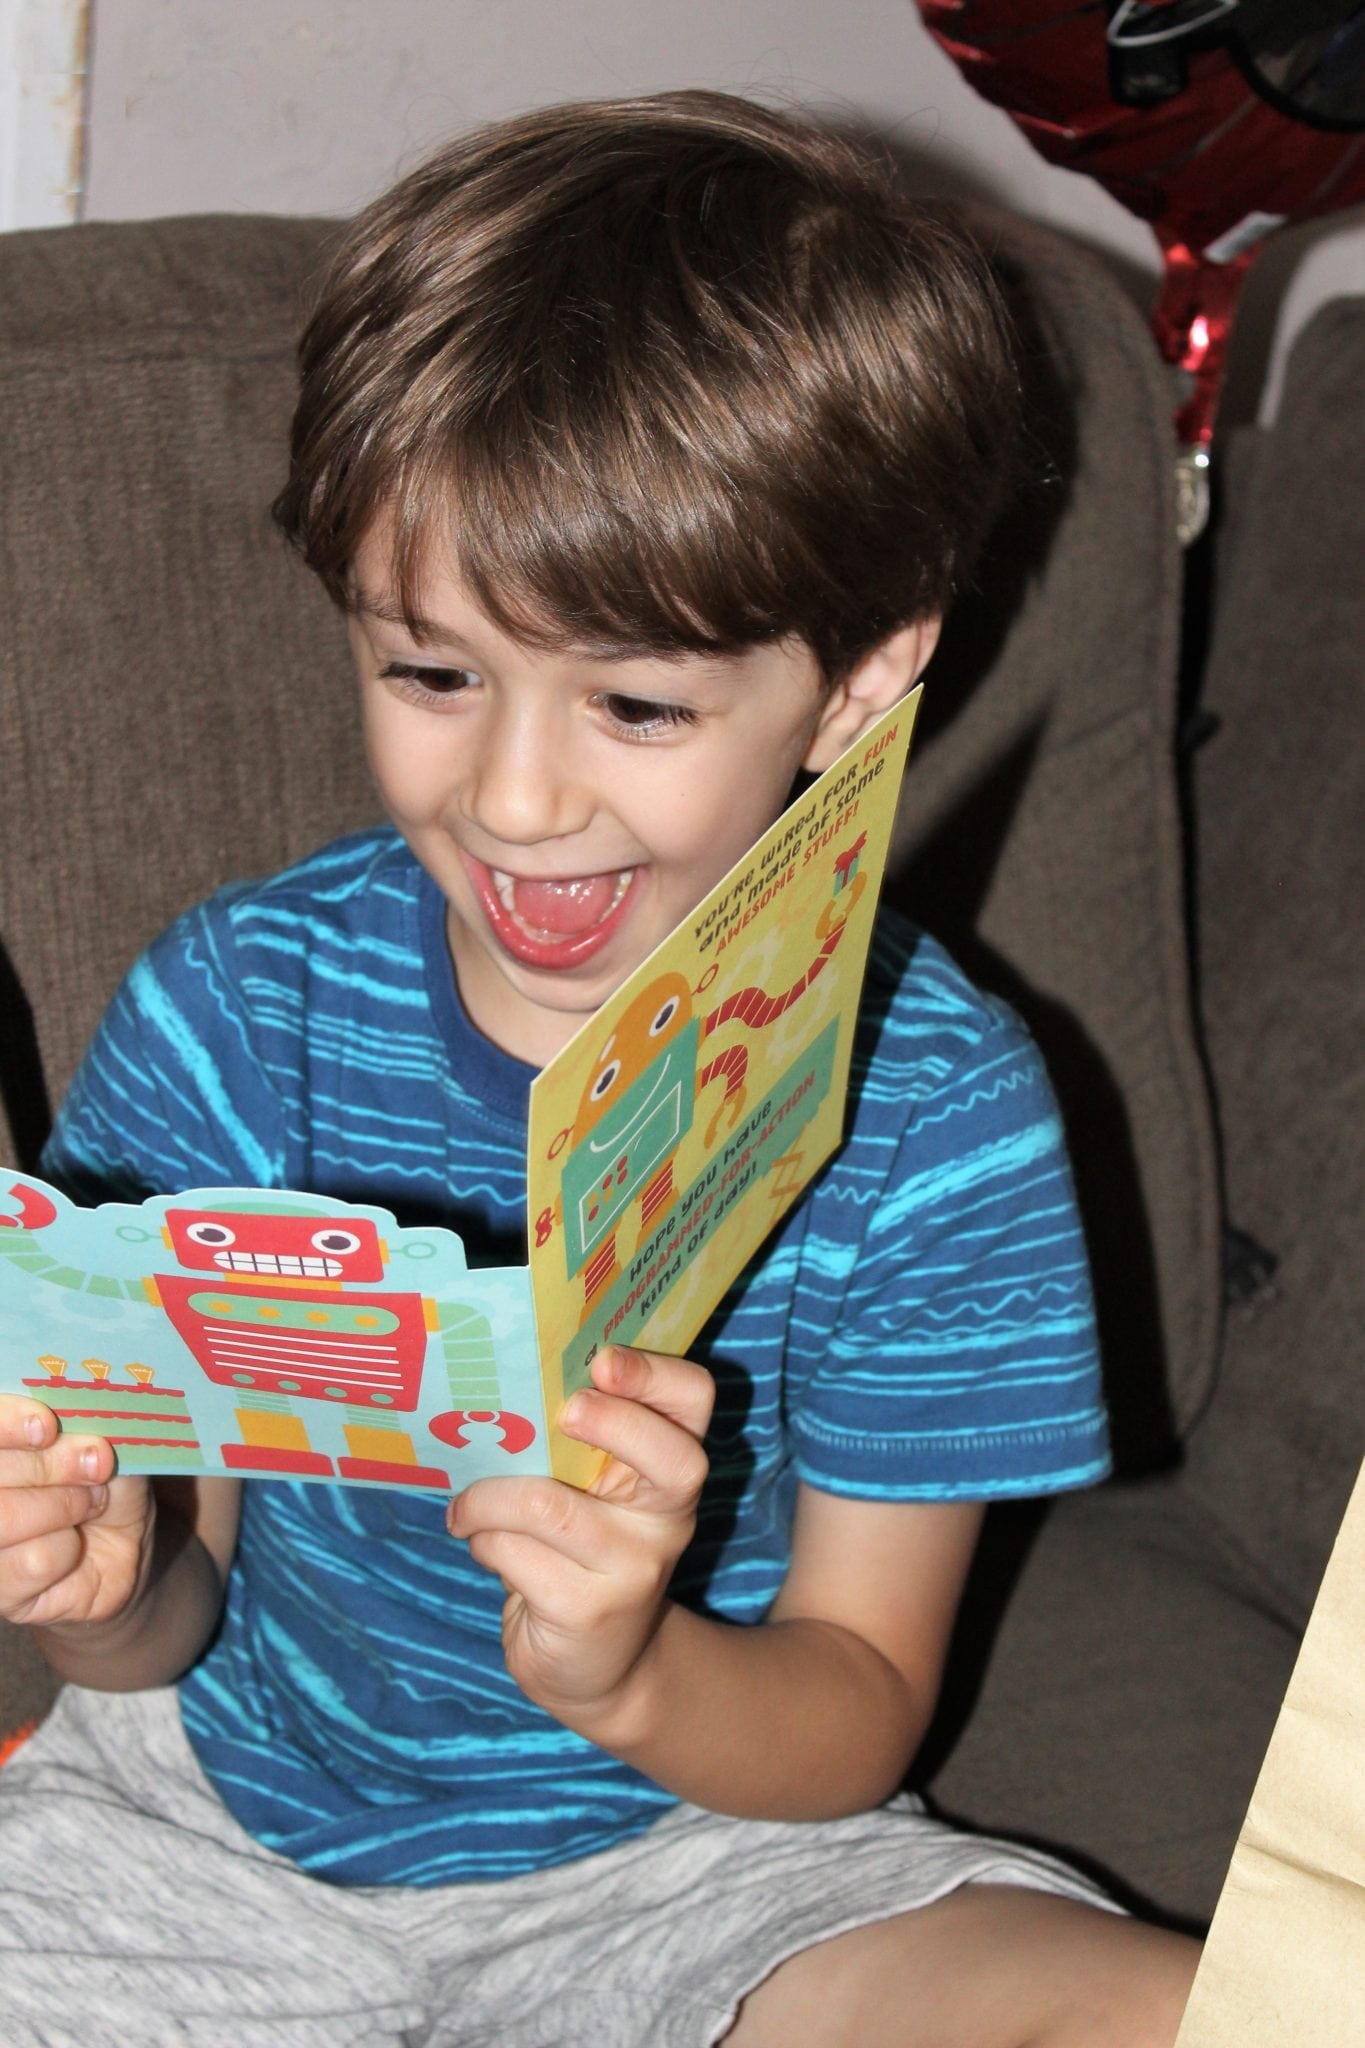 blonde hair preschool boy in blue shirt looking excitedly at a robot birthday card